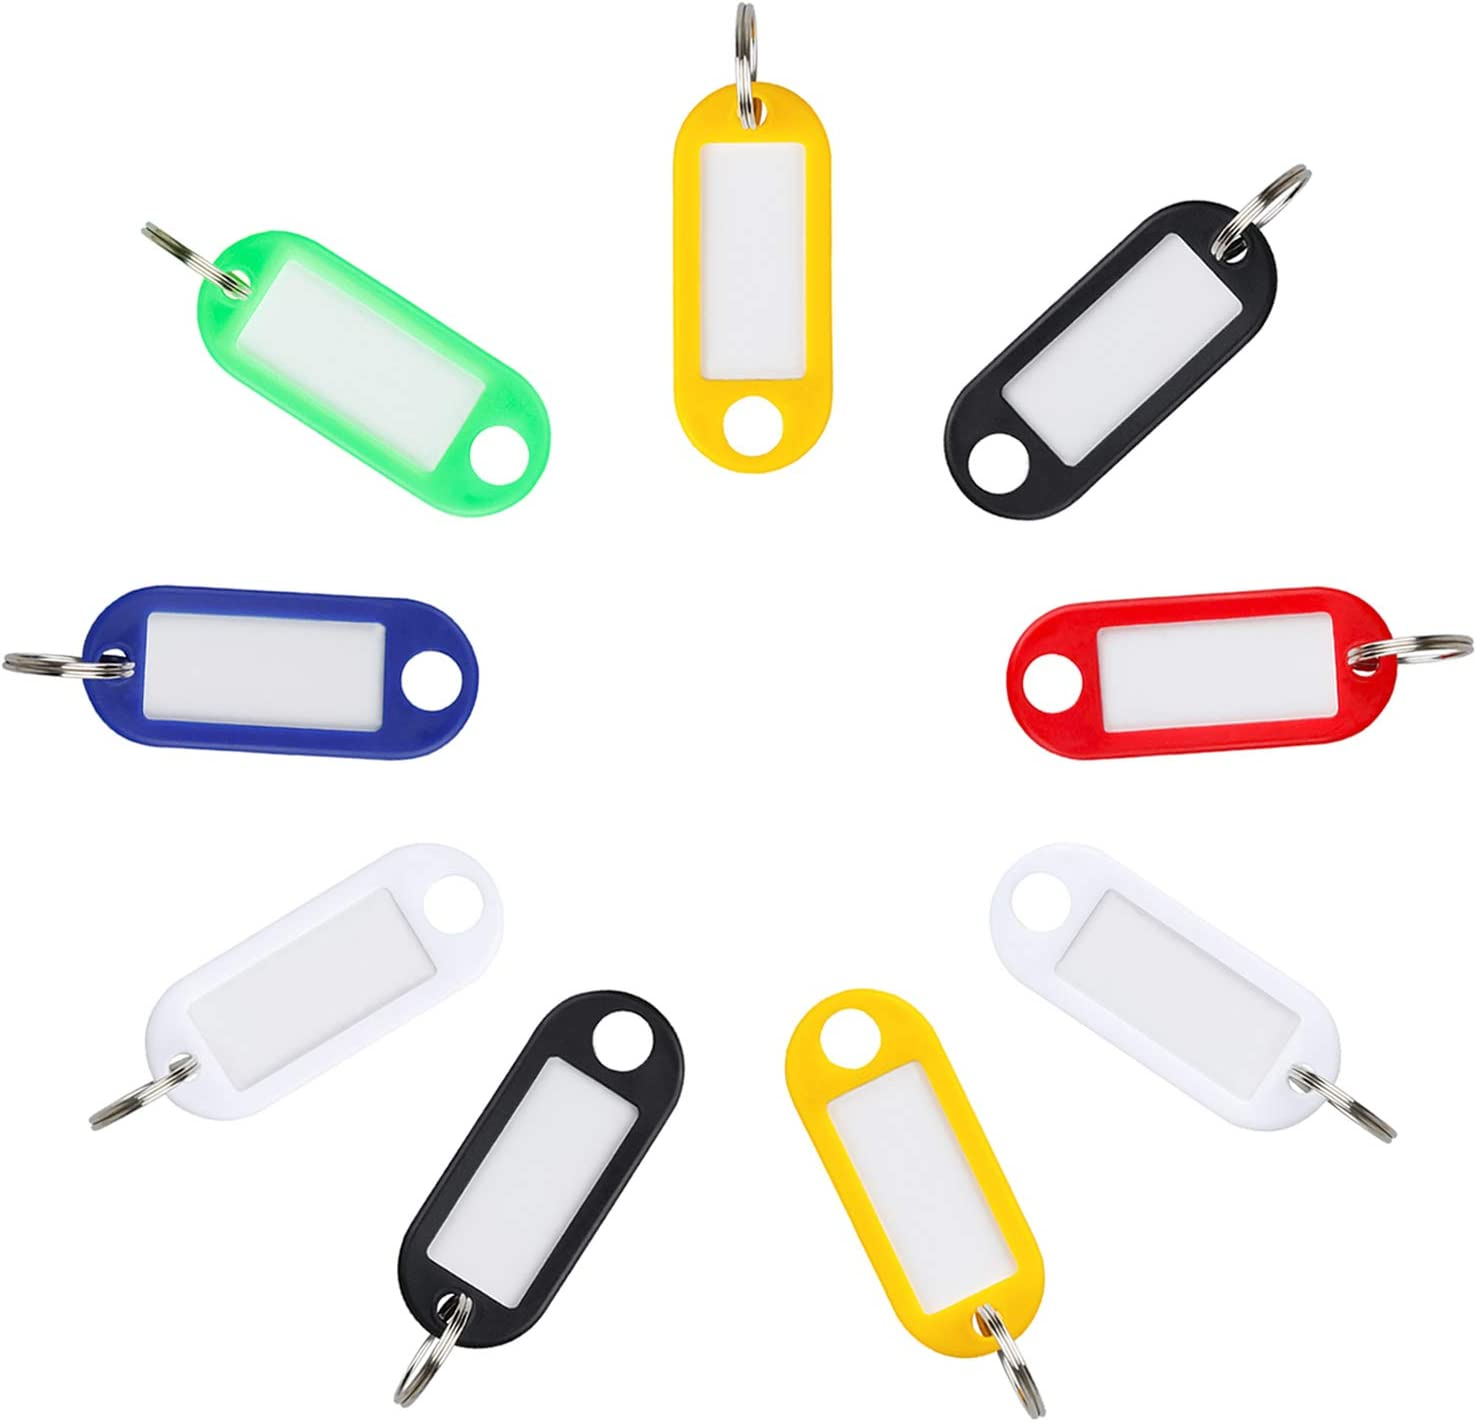 Uniclife 20 Pack Plastic Key Tags with Split Rings Label Window Assorted Colors